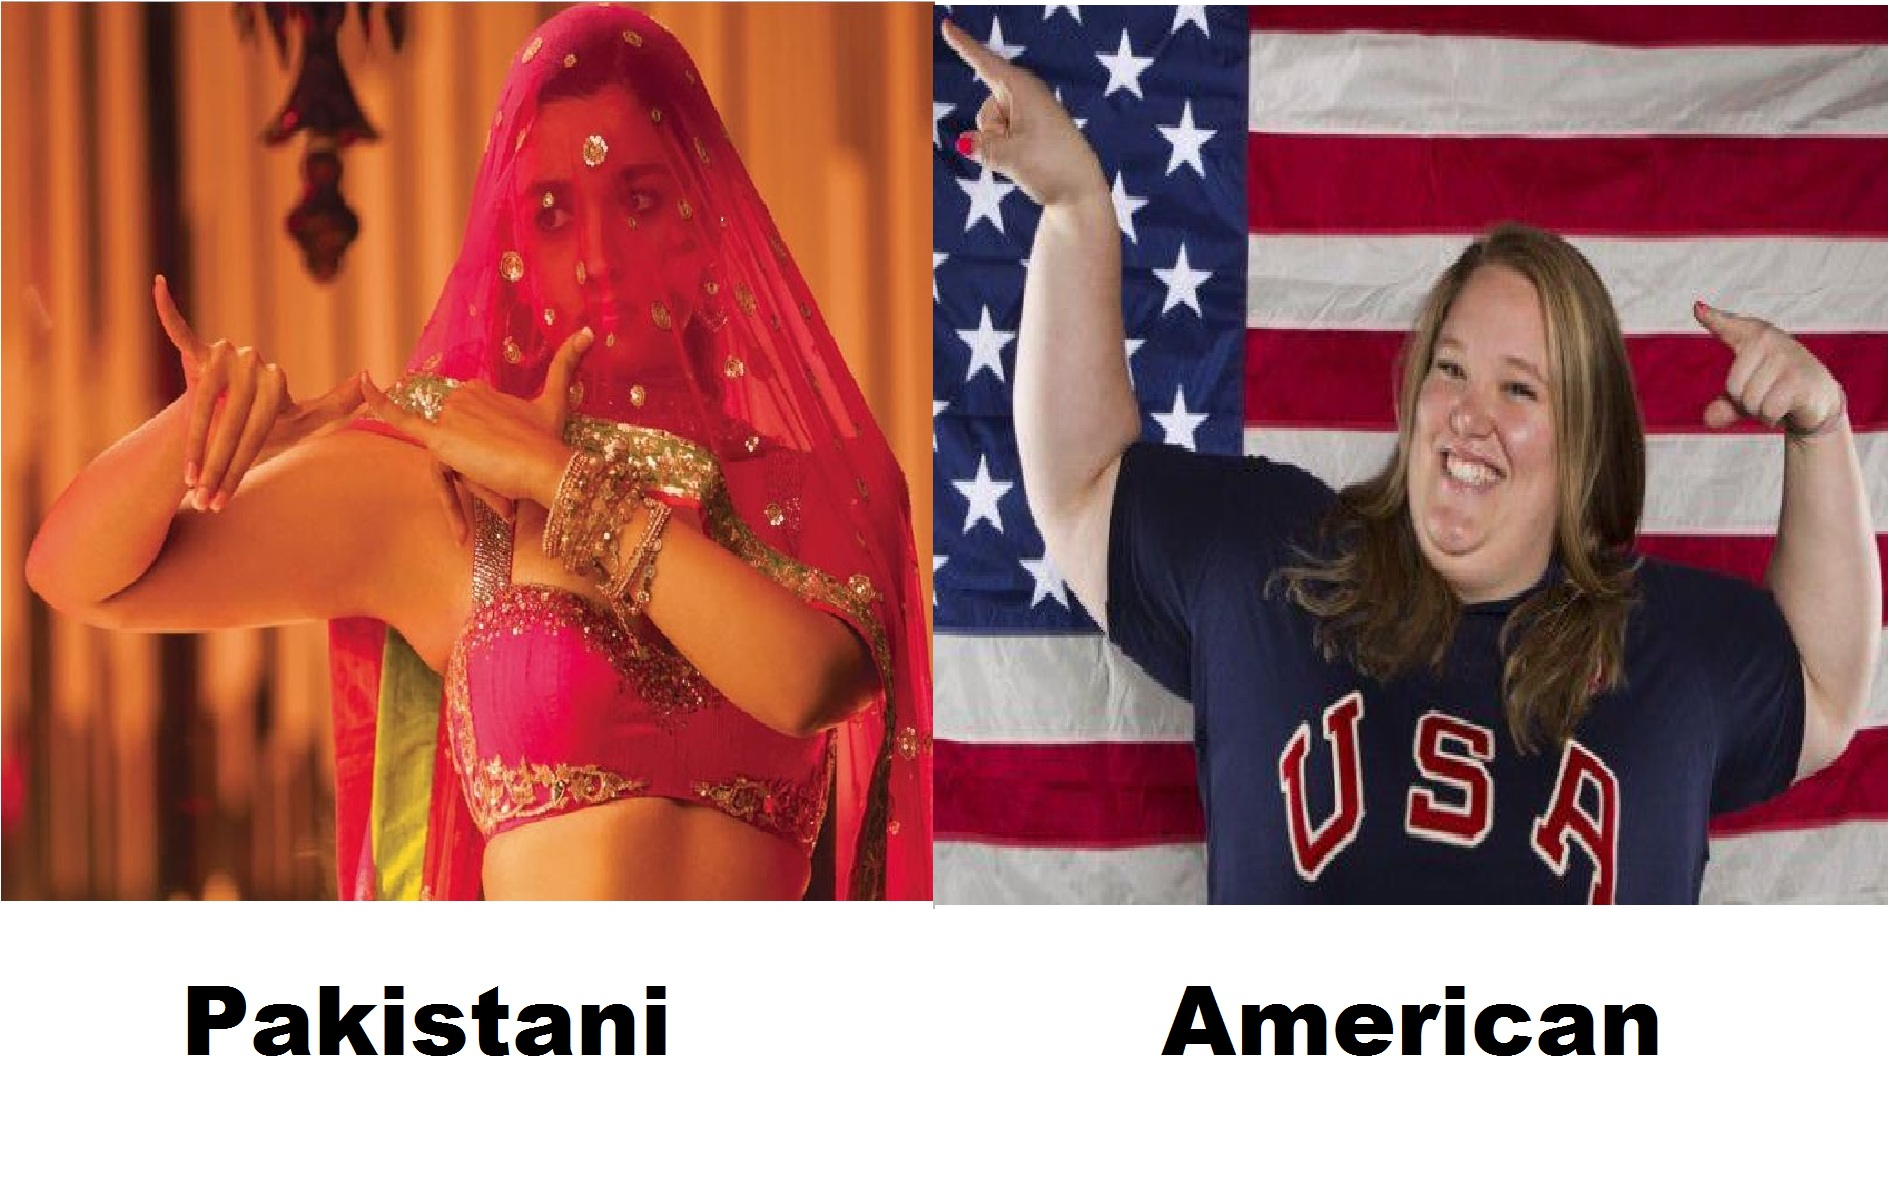 Pakistani vs American woman